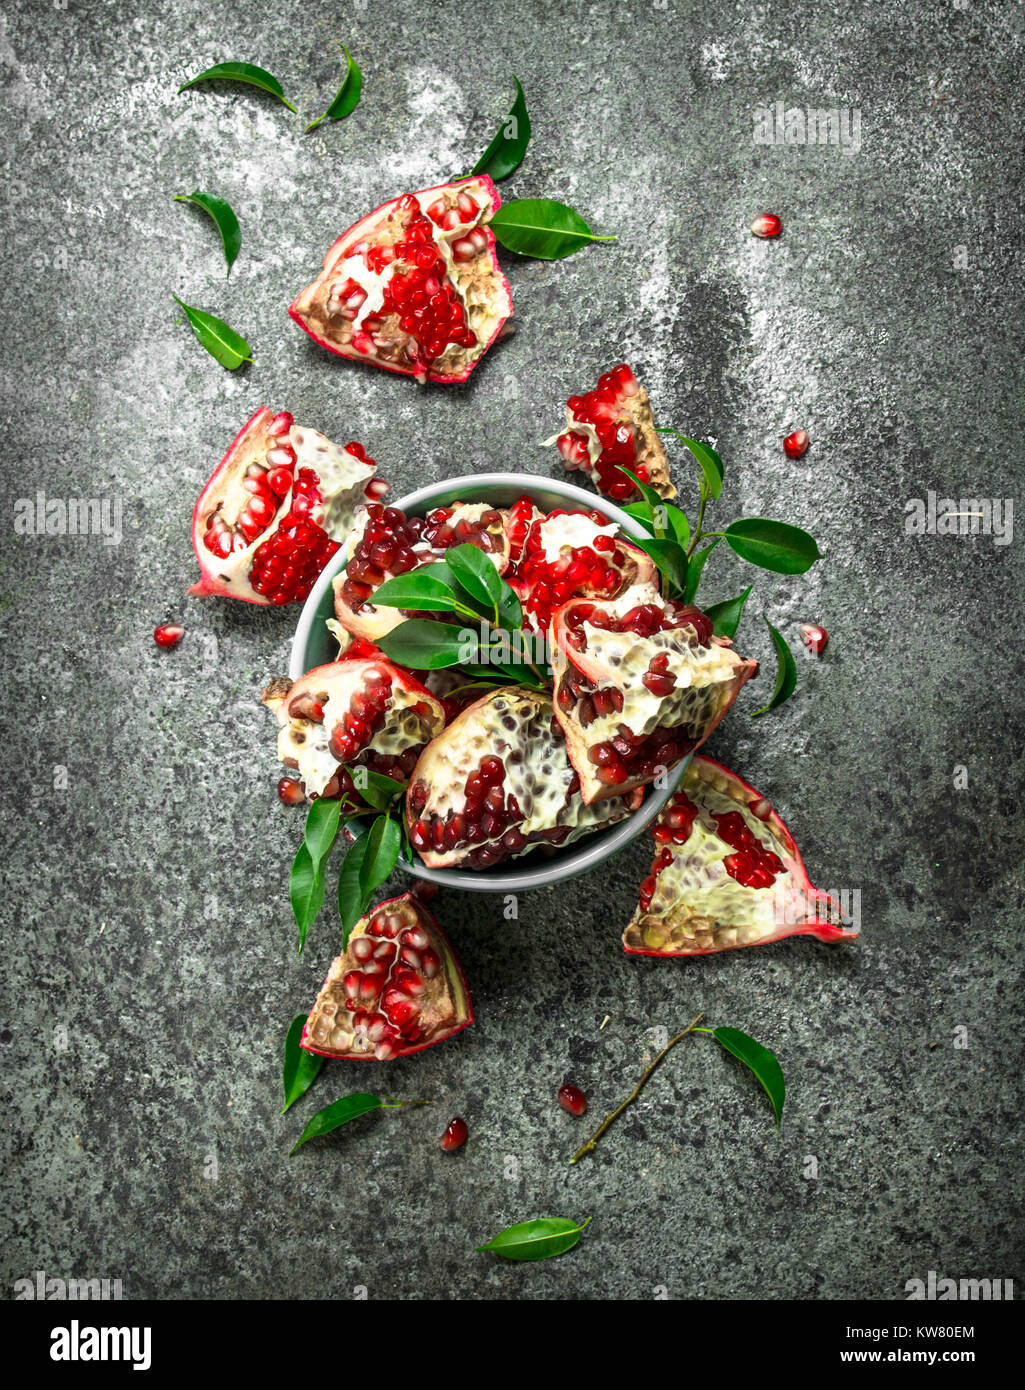 Ripe pieces of pomegranate in a bowl. On a rustic background. - Stock Image